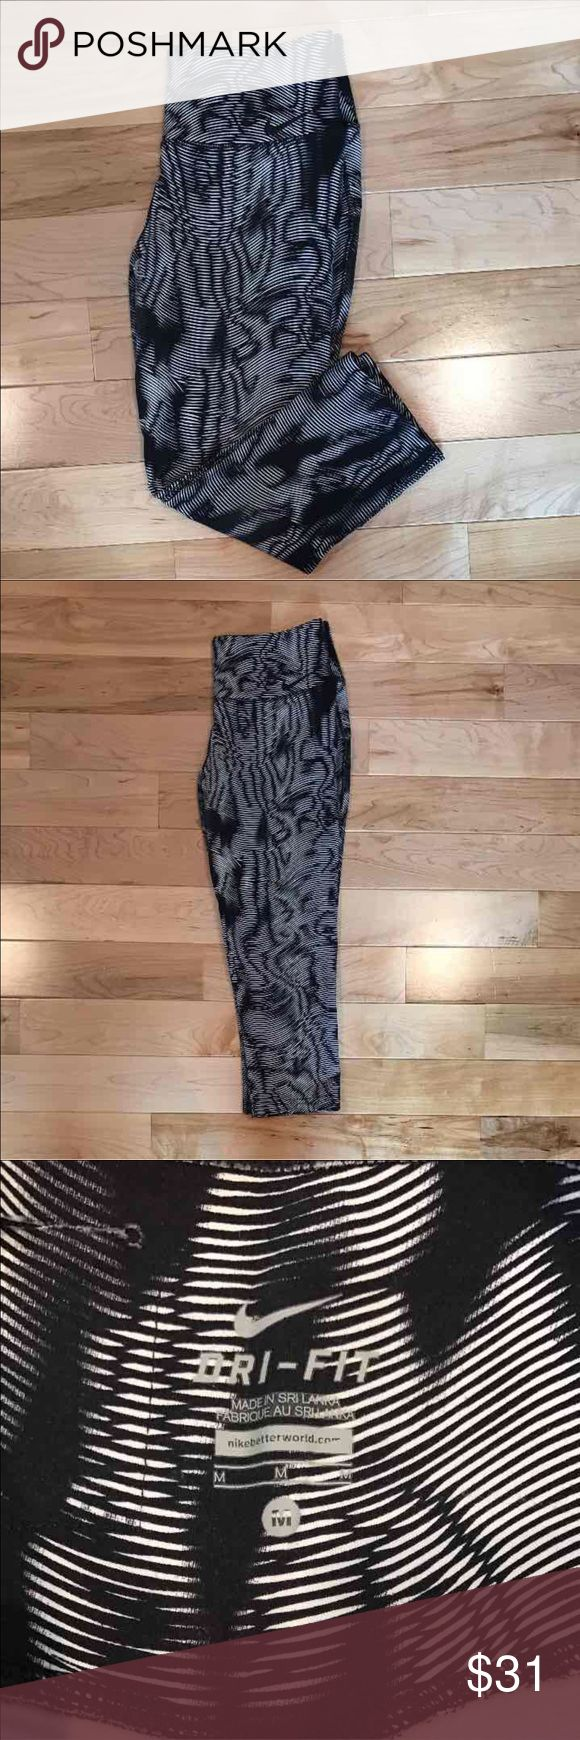 Nike Legend Capri/Legging Nike Legend Capri leggings. Dri-fit material. Nice thick athletic Capri. Great for running, gym workouts, and yoga. Colors are black, and white. Size medium. Nike Pants Leggings